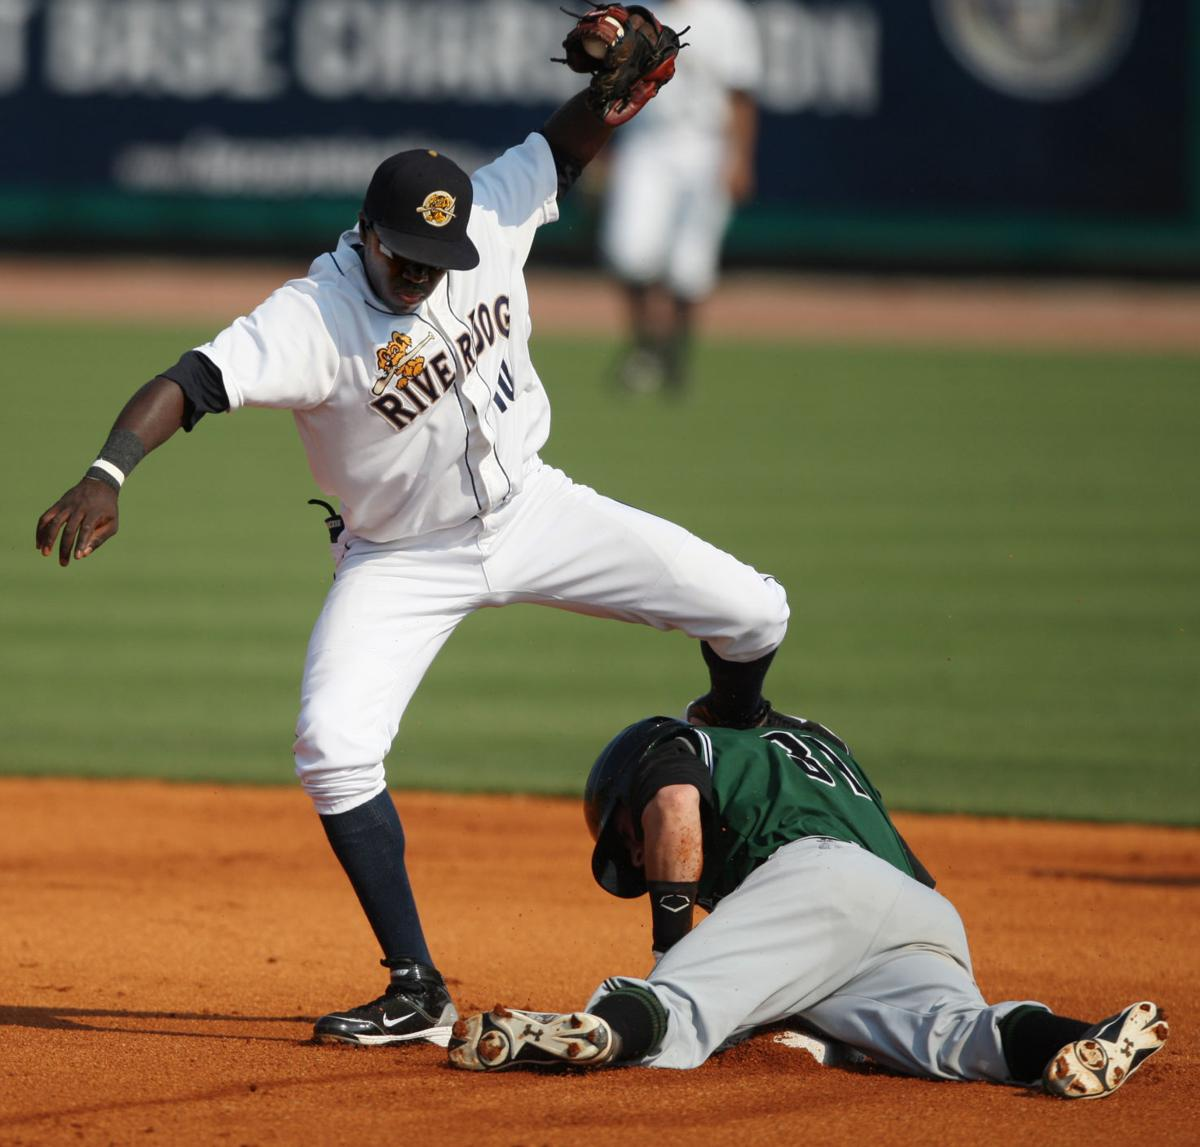 Riverdogs vs GreenJackets